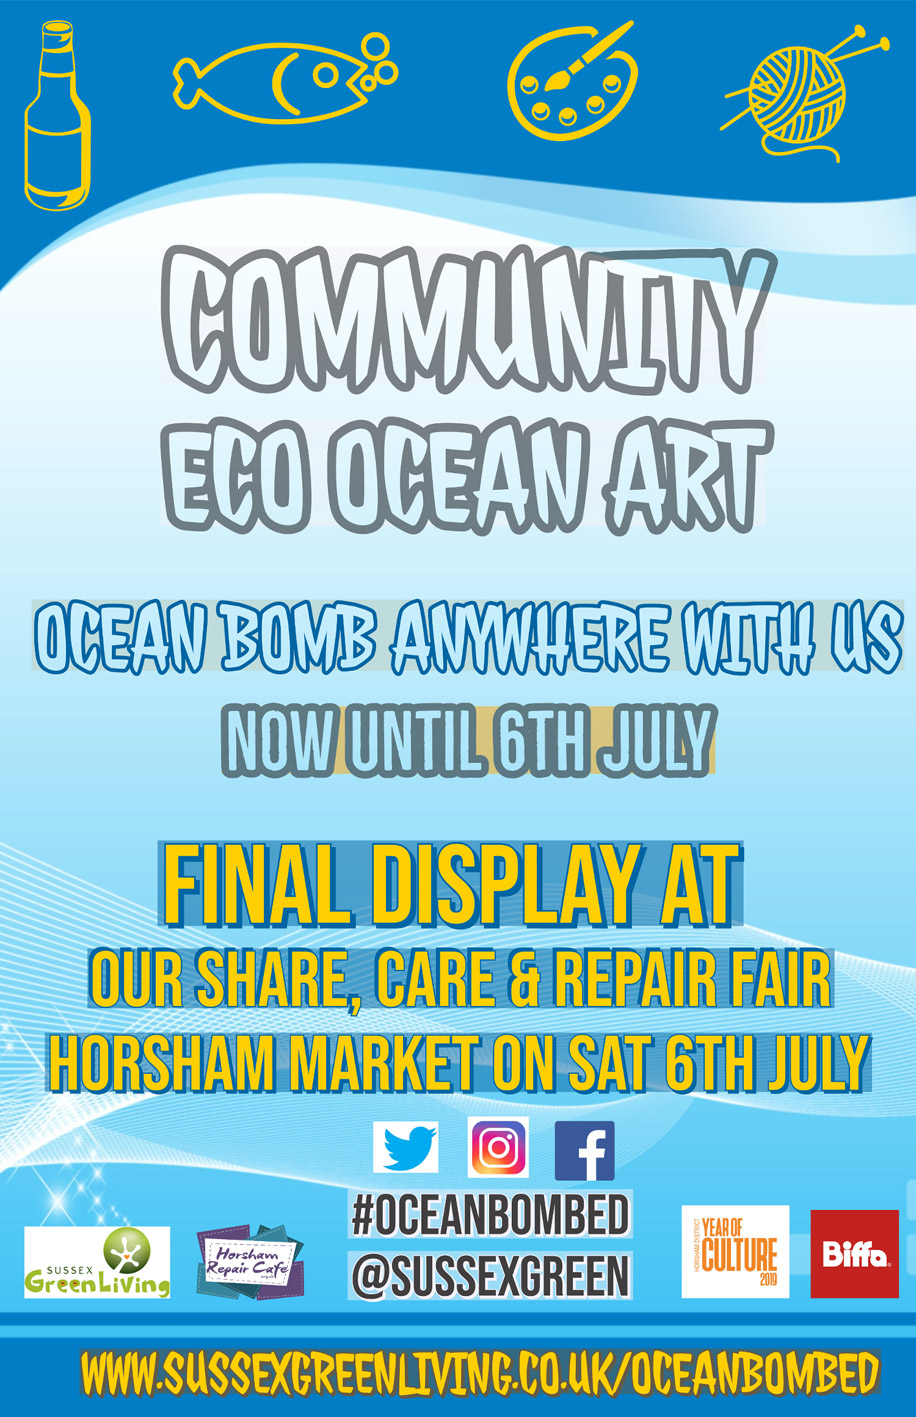 Community Eco Ocean Art